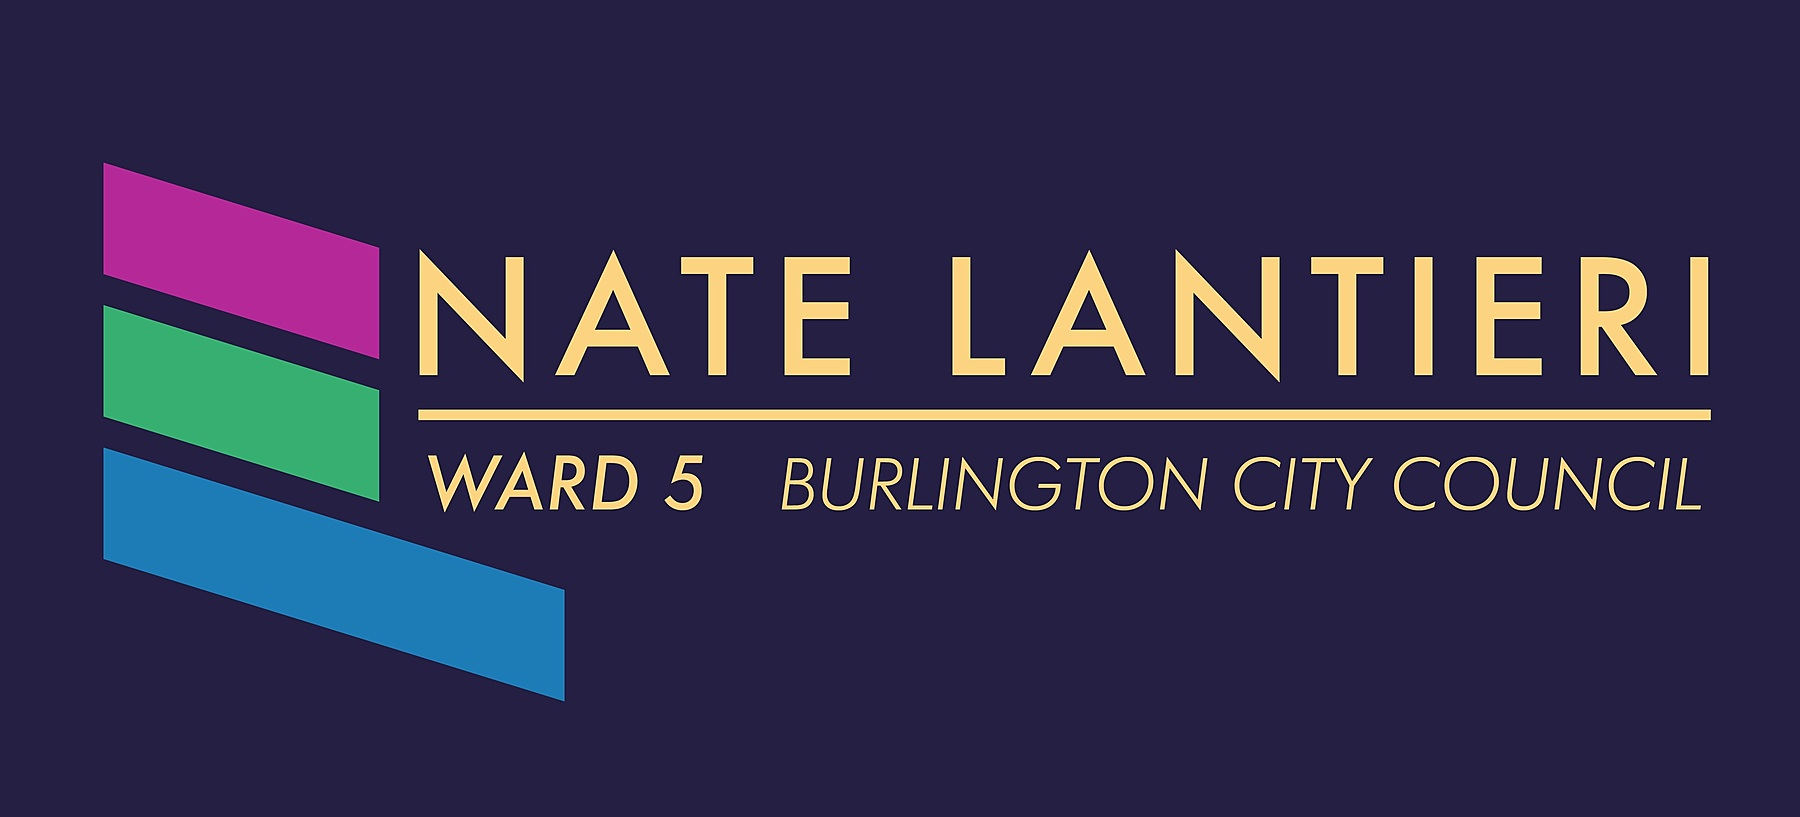 Nate Lantieri for City Council: General Fund